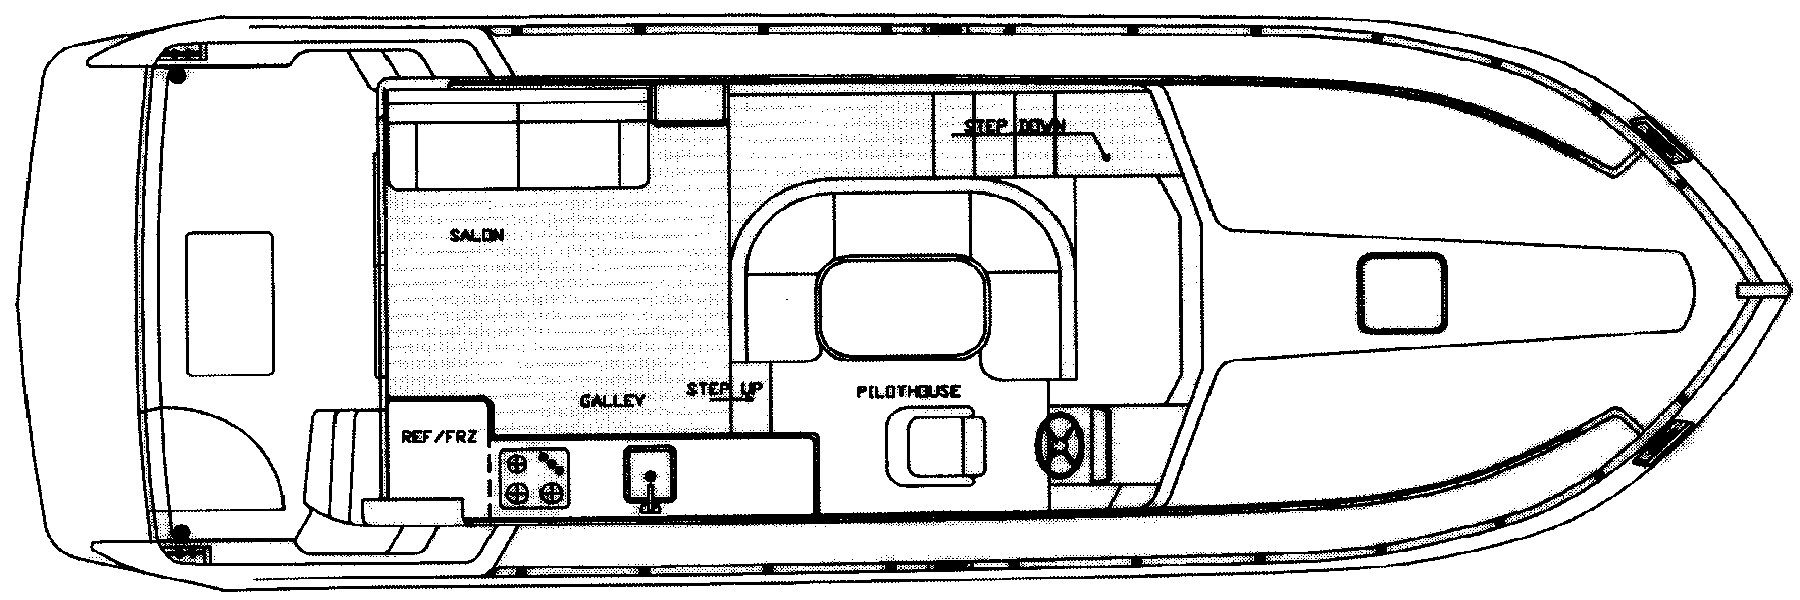 39 SL Floor Plan 2